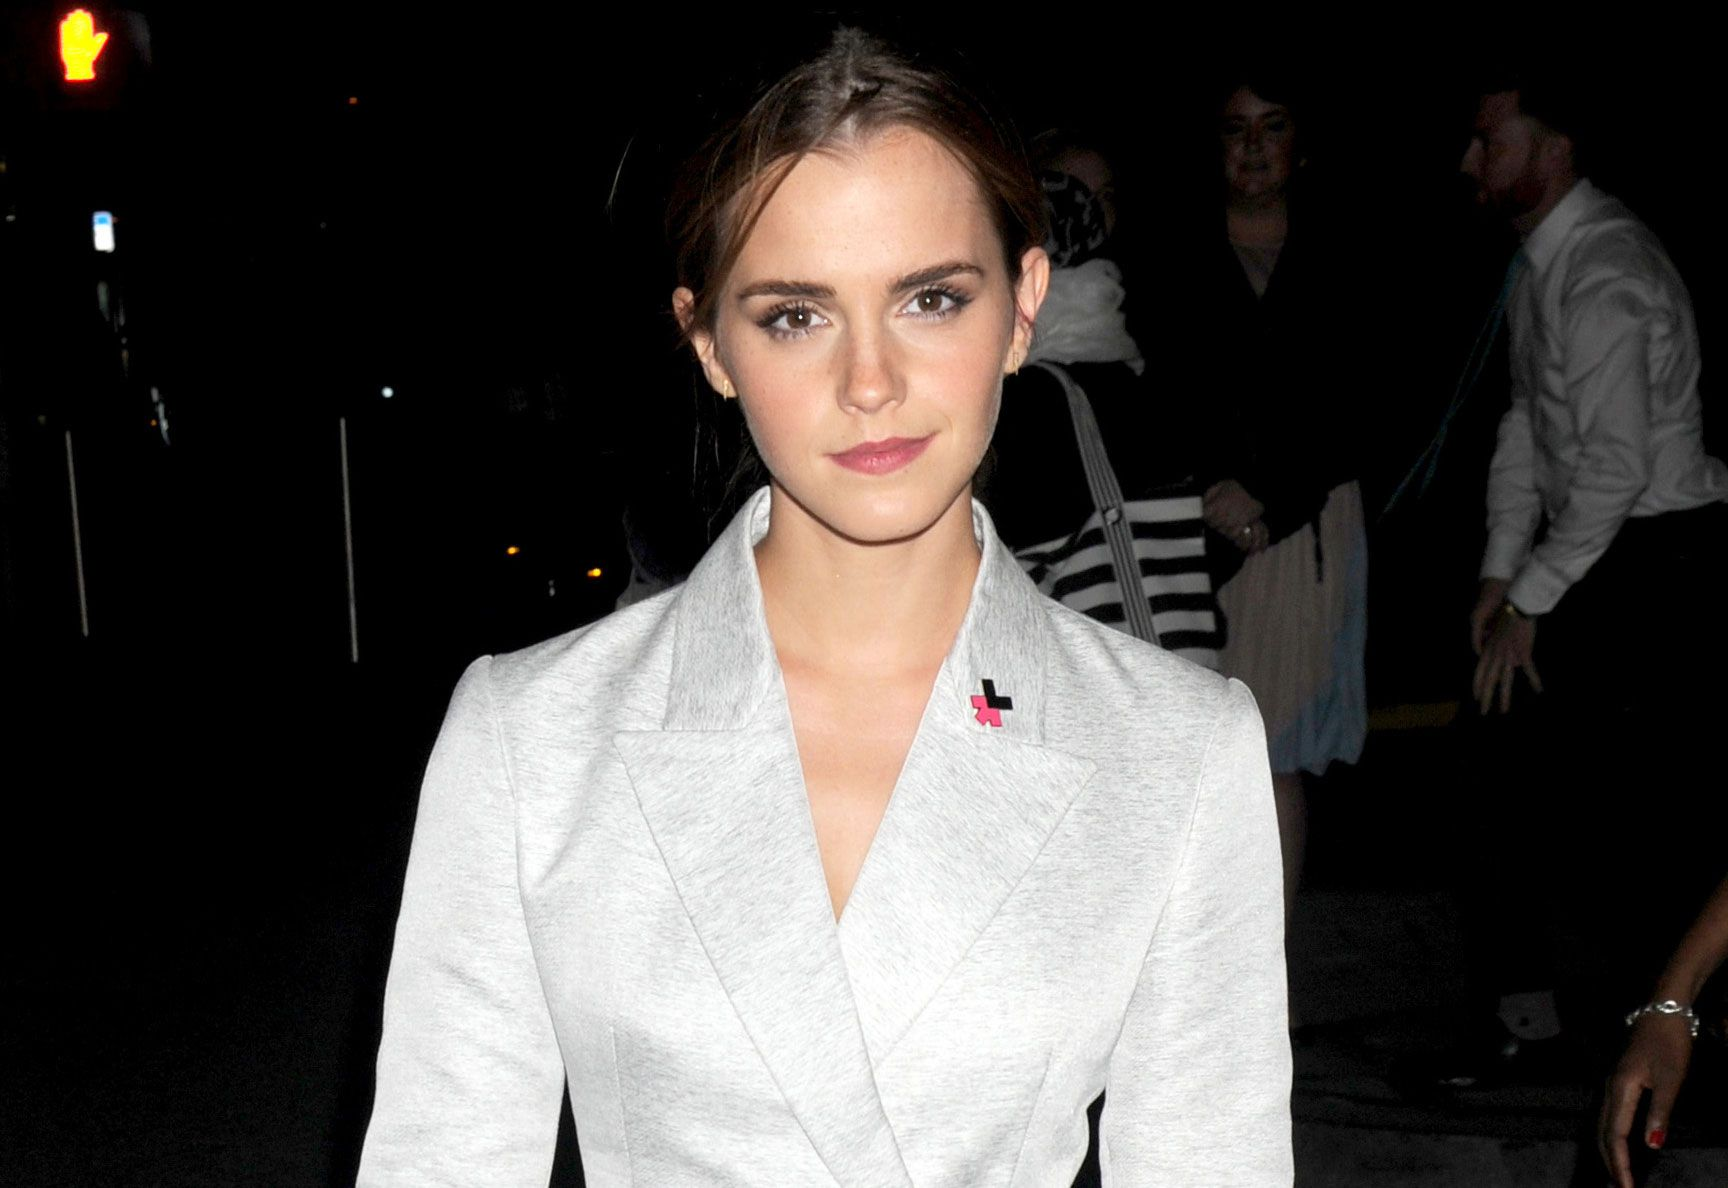 WTF? Emma Watson nude photo leak threat appears to be a hoax